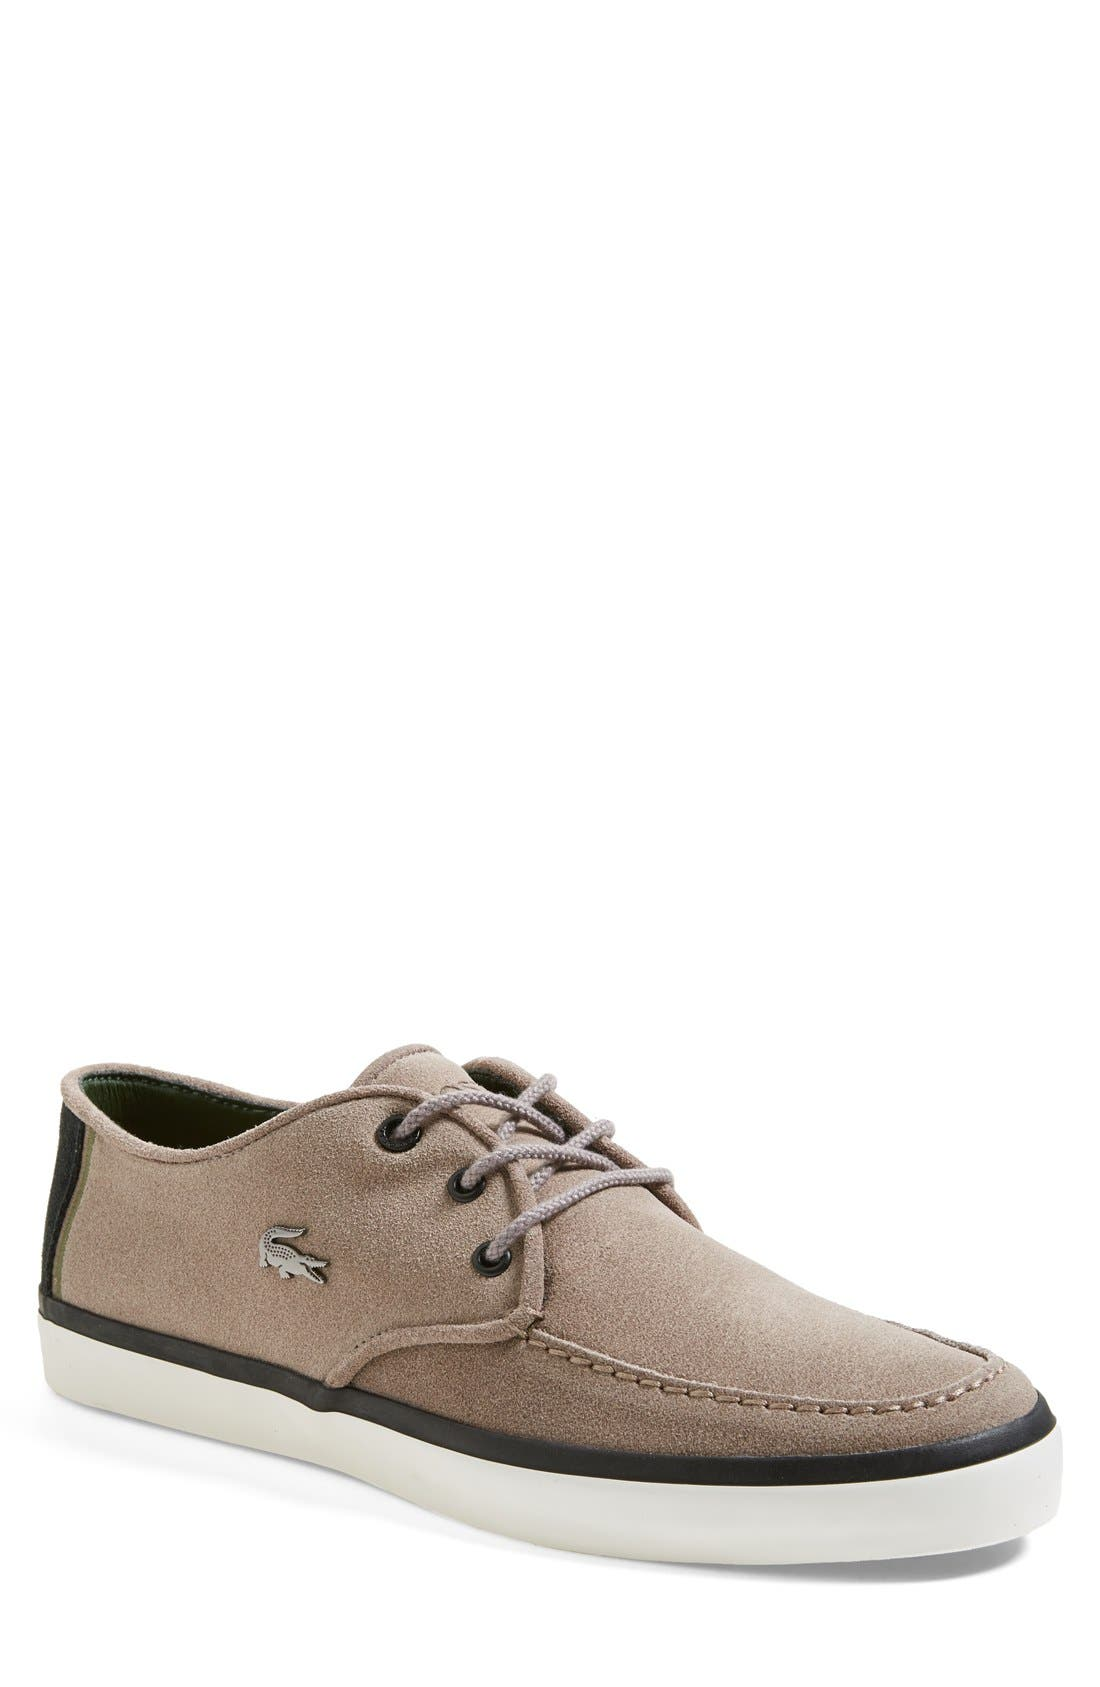 Alternate Image 1 Selected - Lacoste 'Sevrin 4' Sneaker (Men) (Online Only)